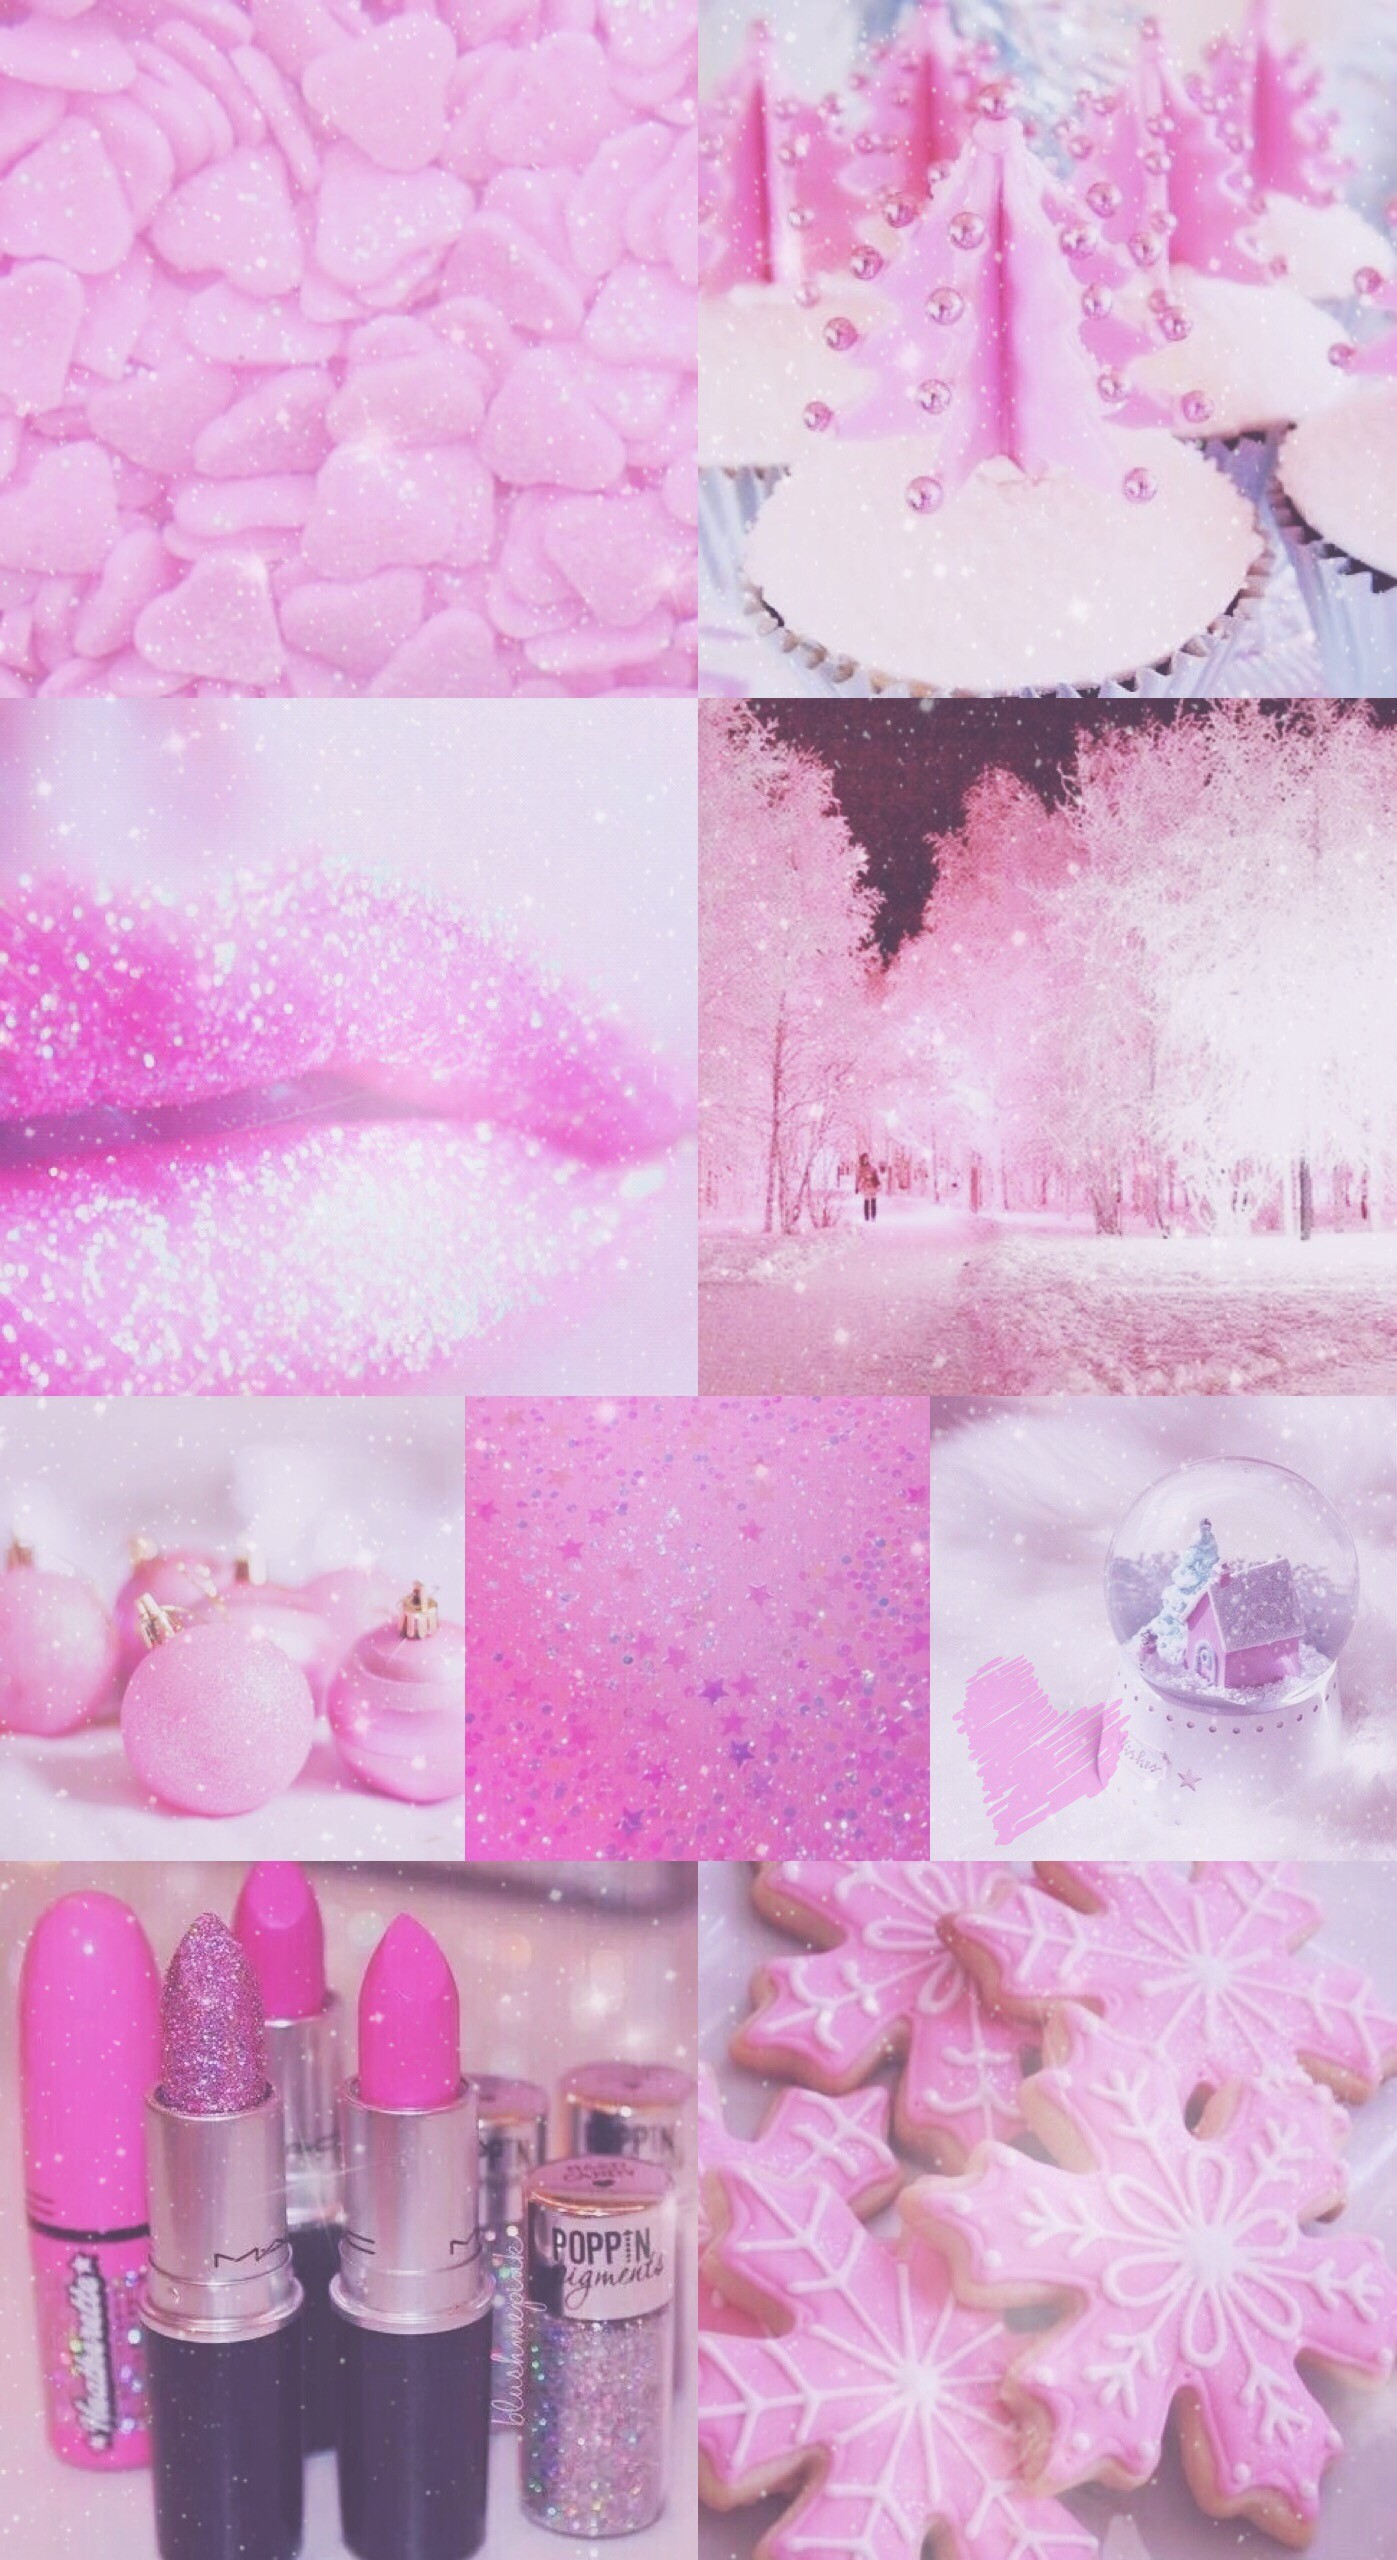 pink, Christmas, wallpaper, sparkly, glitter, xmas, background, iPhone,